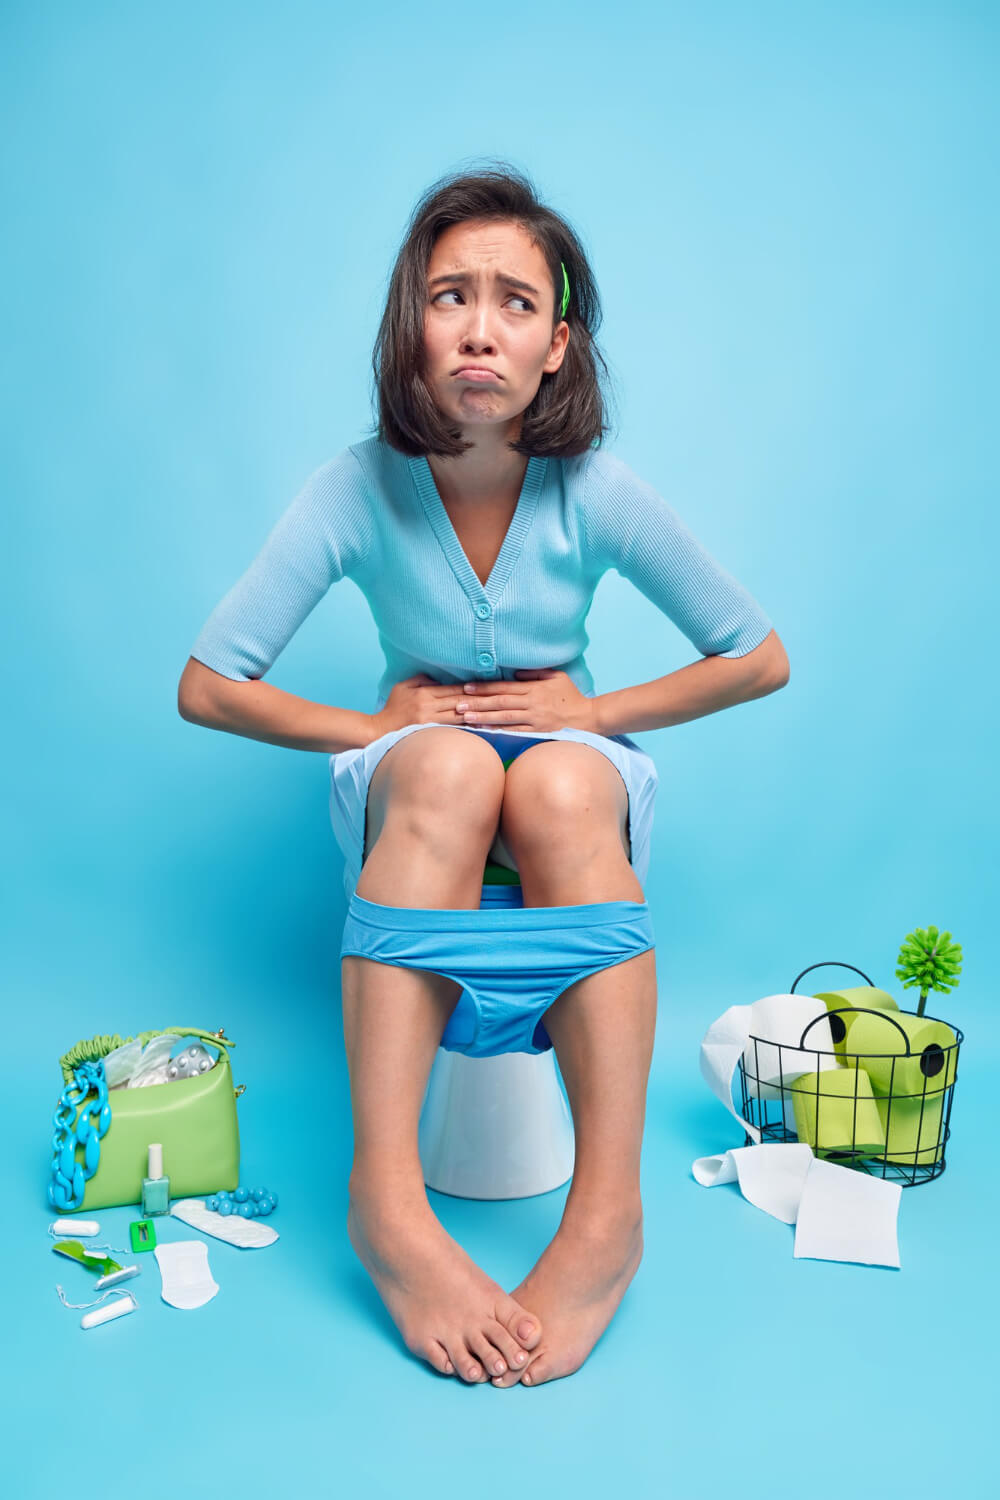 indoor-shot-displeased-asian-woman-suffers-from-stomachache-indigestion-diarrhea-poses-poses-toilet-bowl-feels-unwell-because-abdominal-pain-wears-panties-down-legs